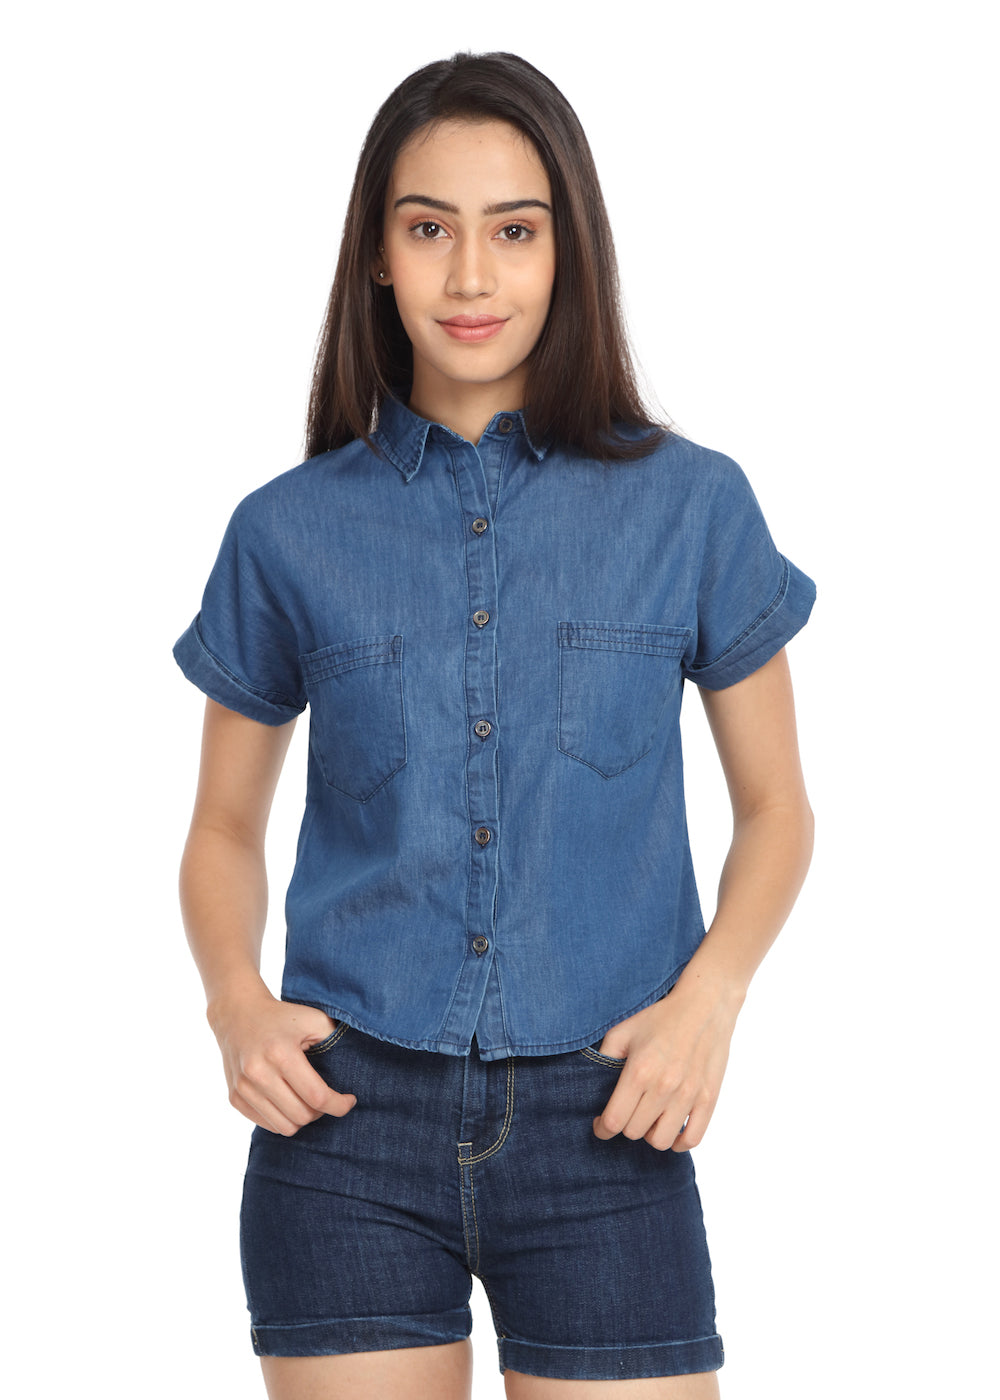 Denim Crop Shirt - GENZEE